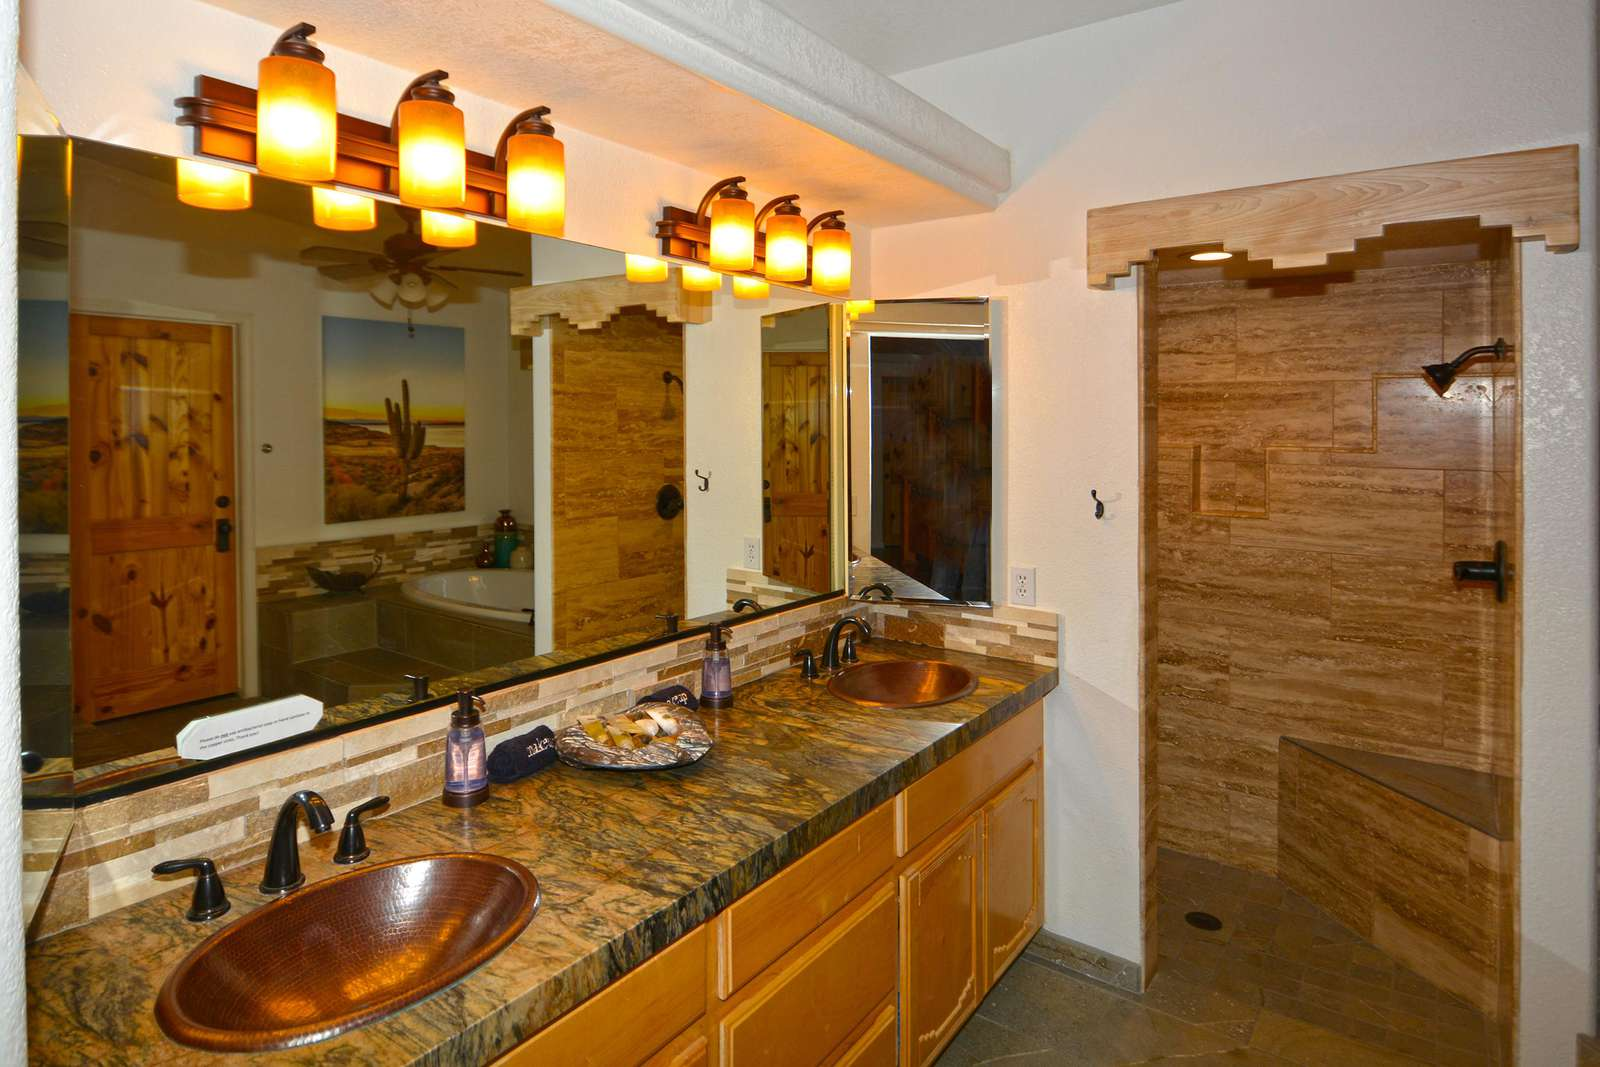 Leather granite and copper sinks!